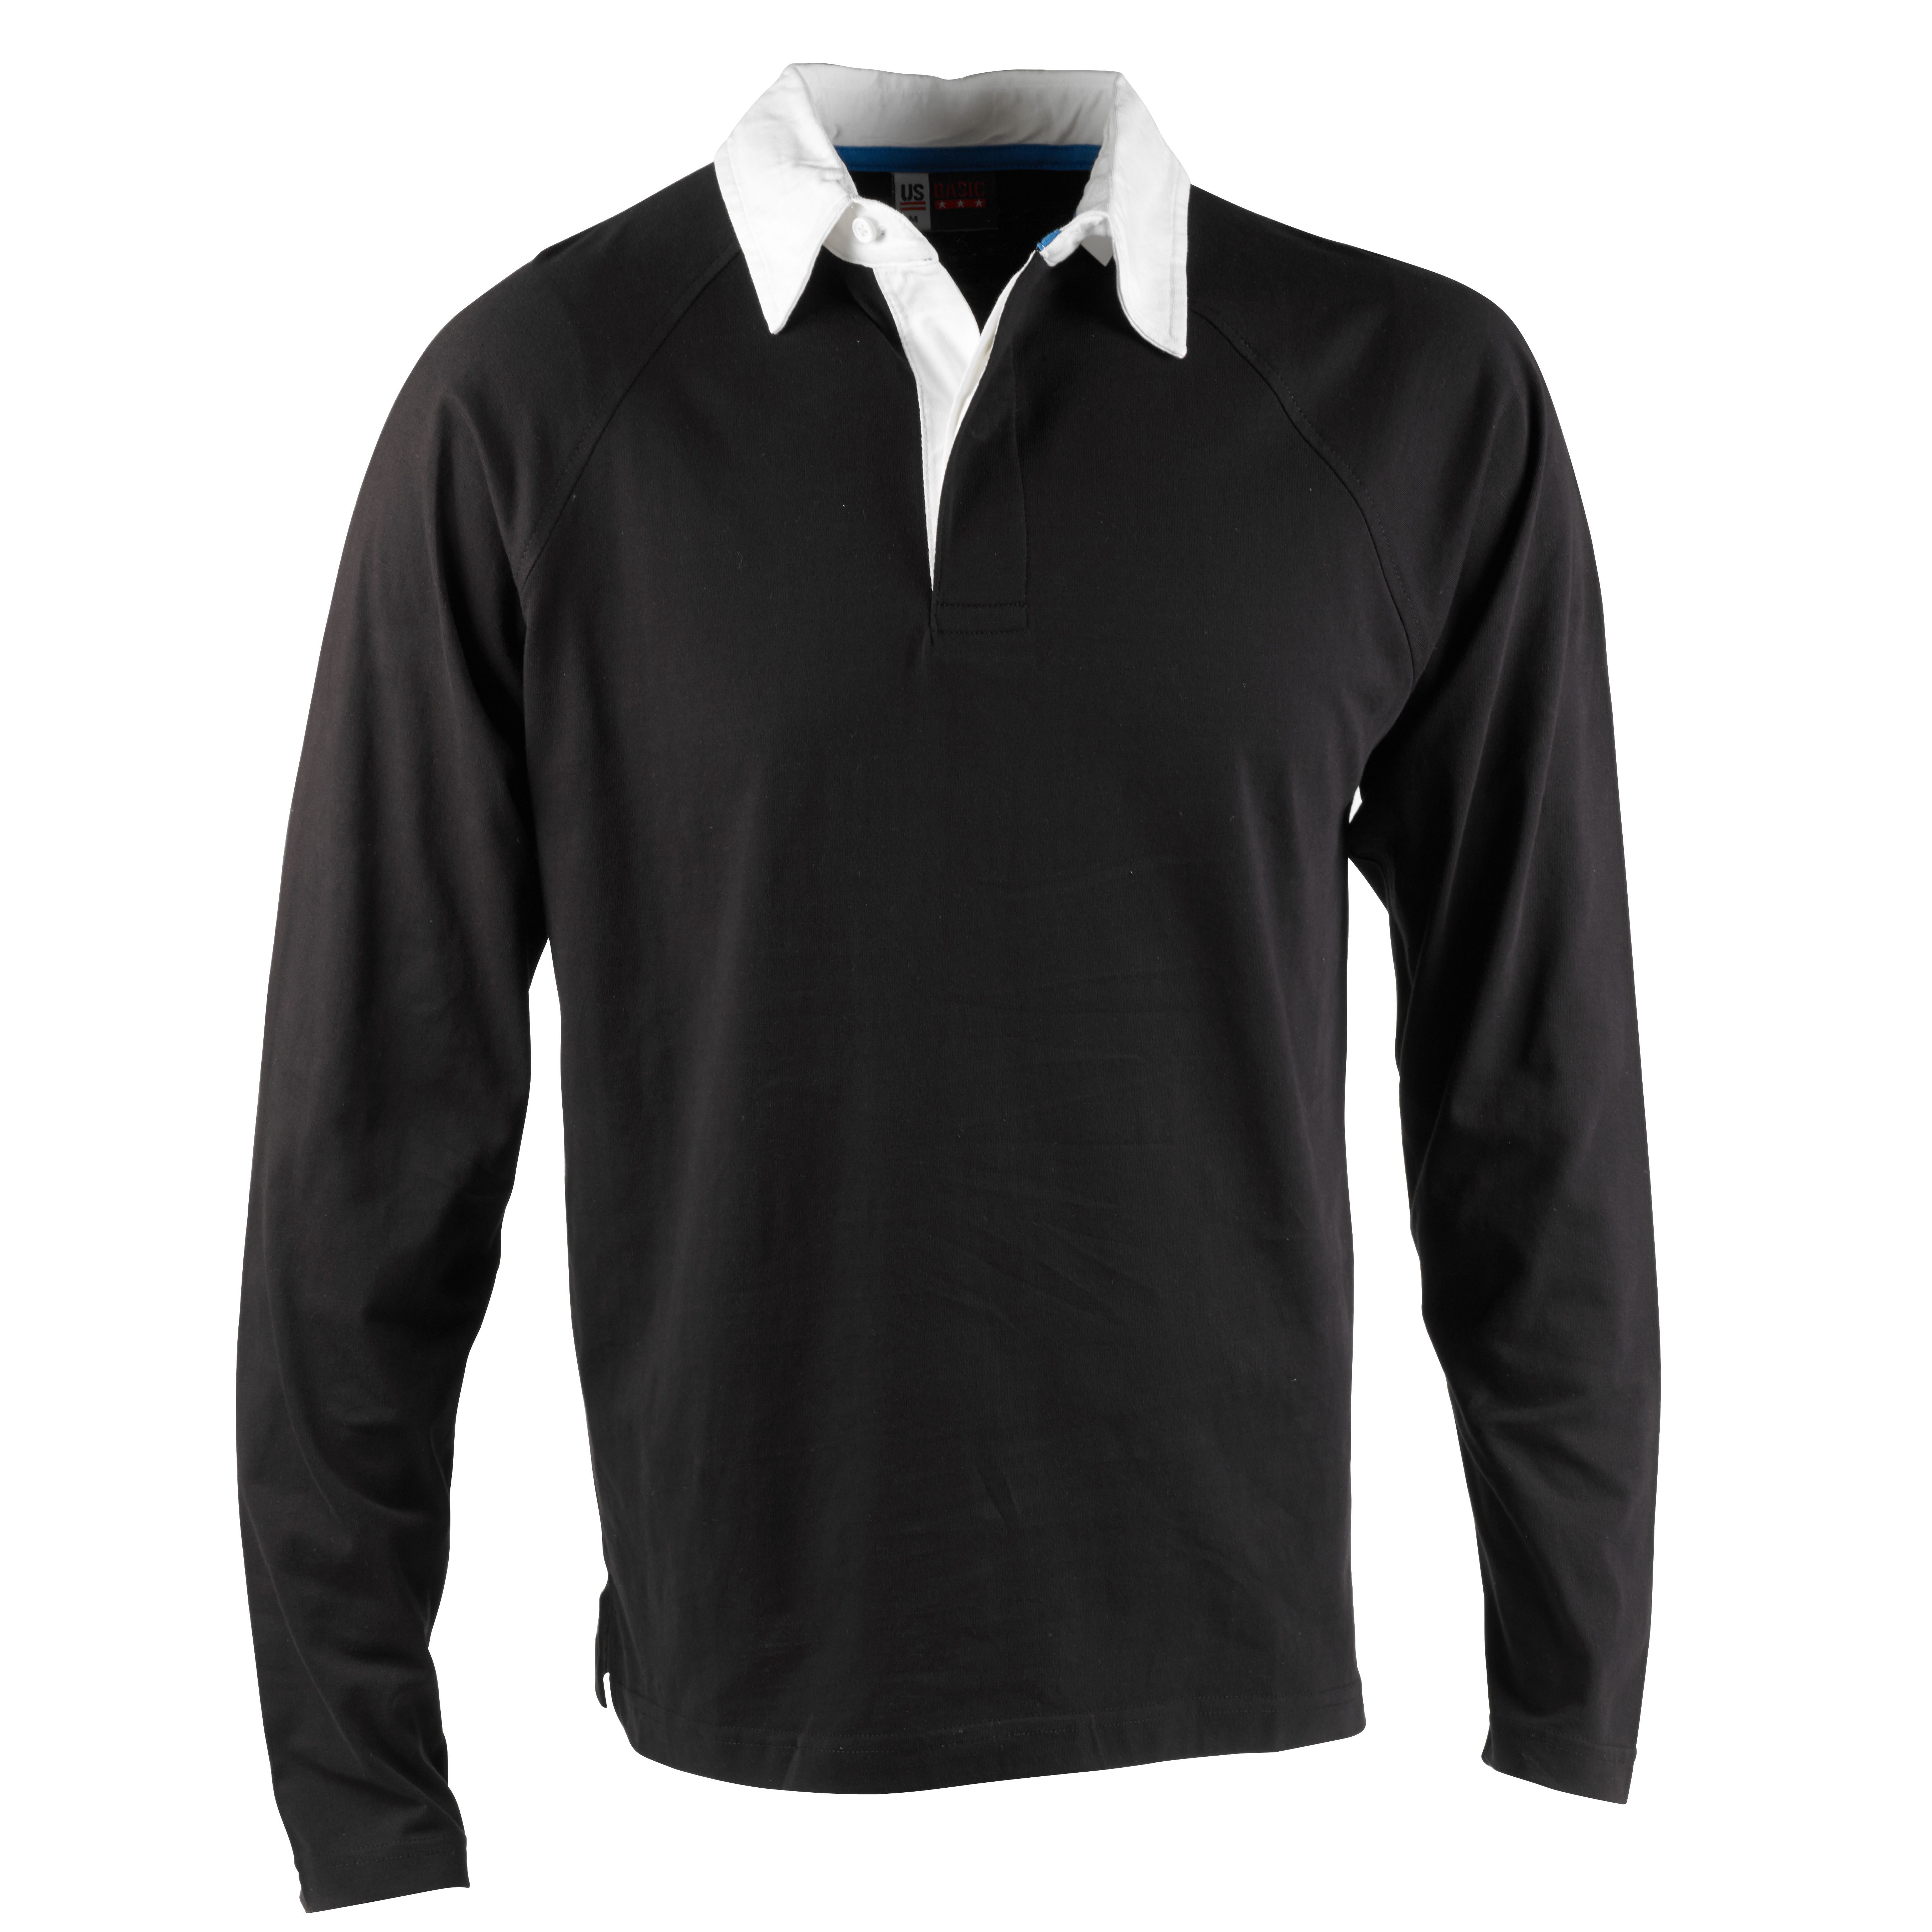 Mens Us Basic Black Rugby Shirt Polo White Collar Top Long